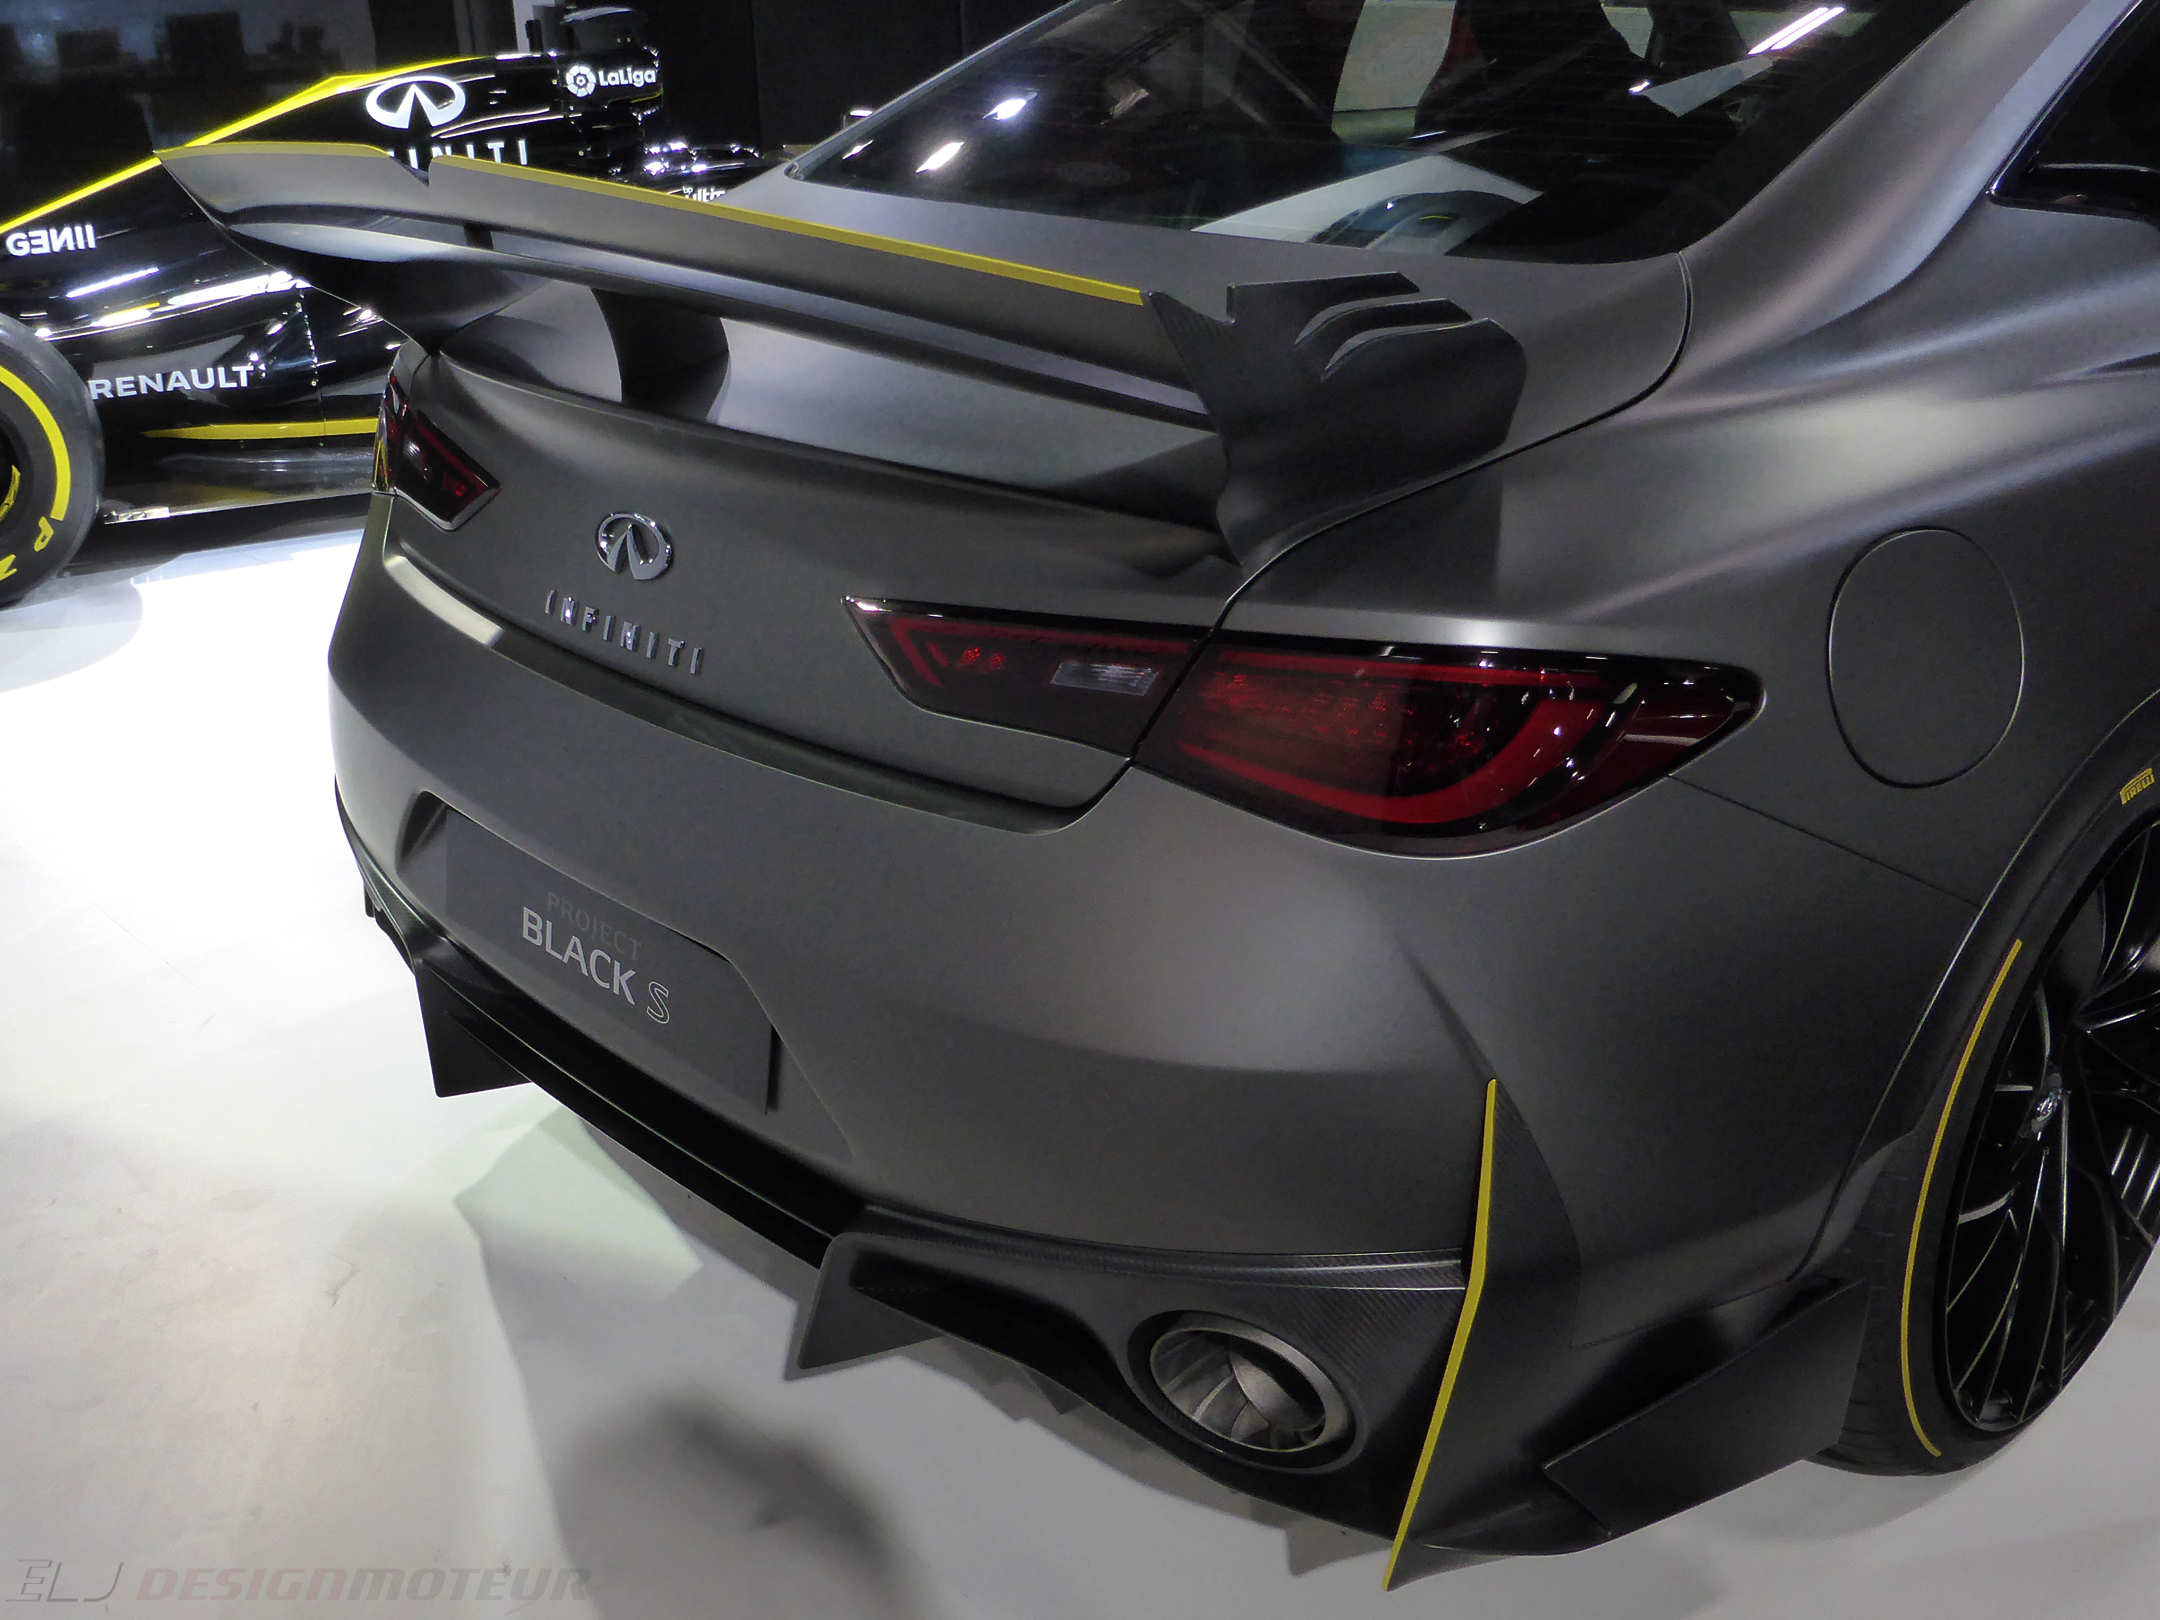 Infiniti Project Black S - rear light - Paris Motor Show - 2018 - Mondial Auto - photo ELJ DESIGNMOTEUR